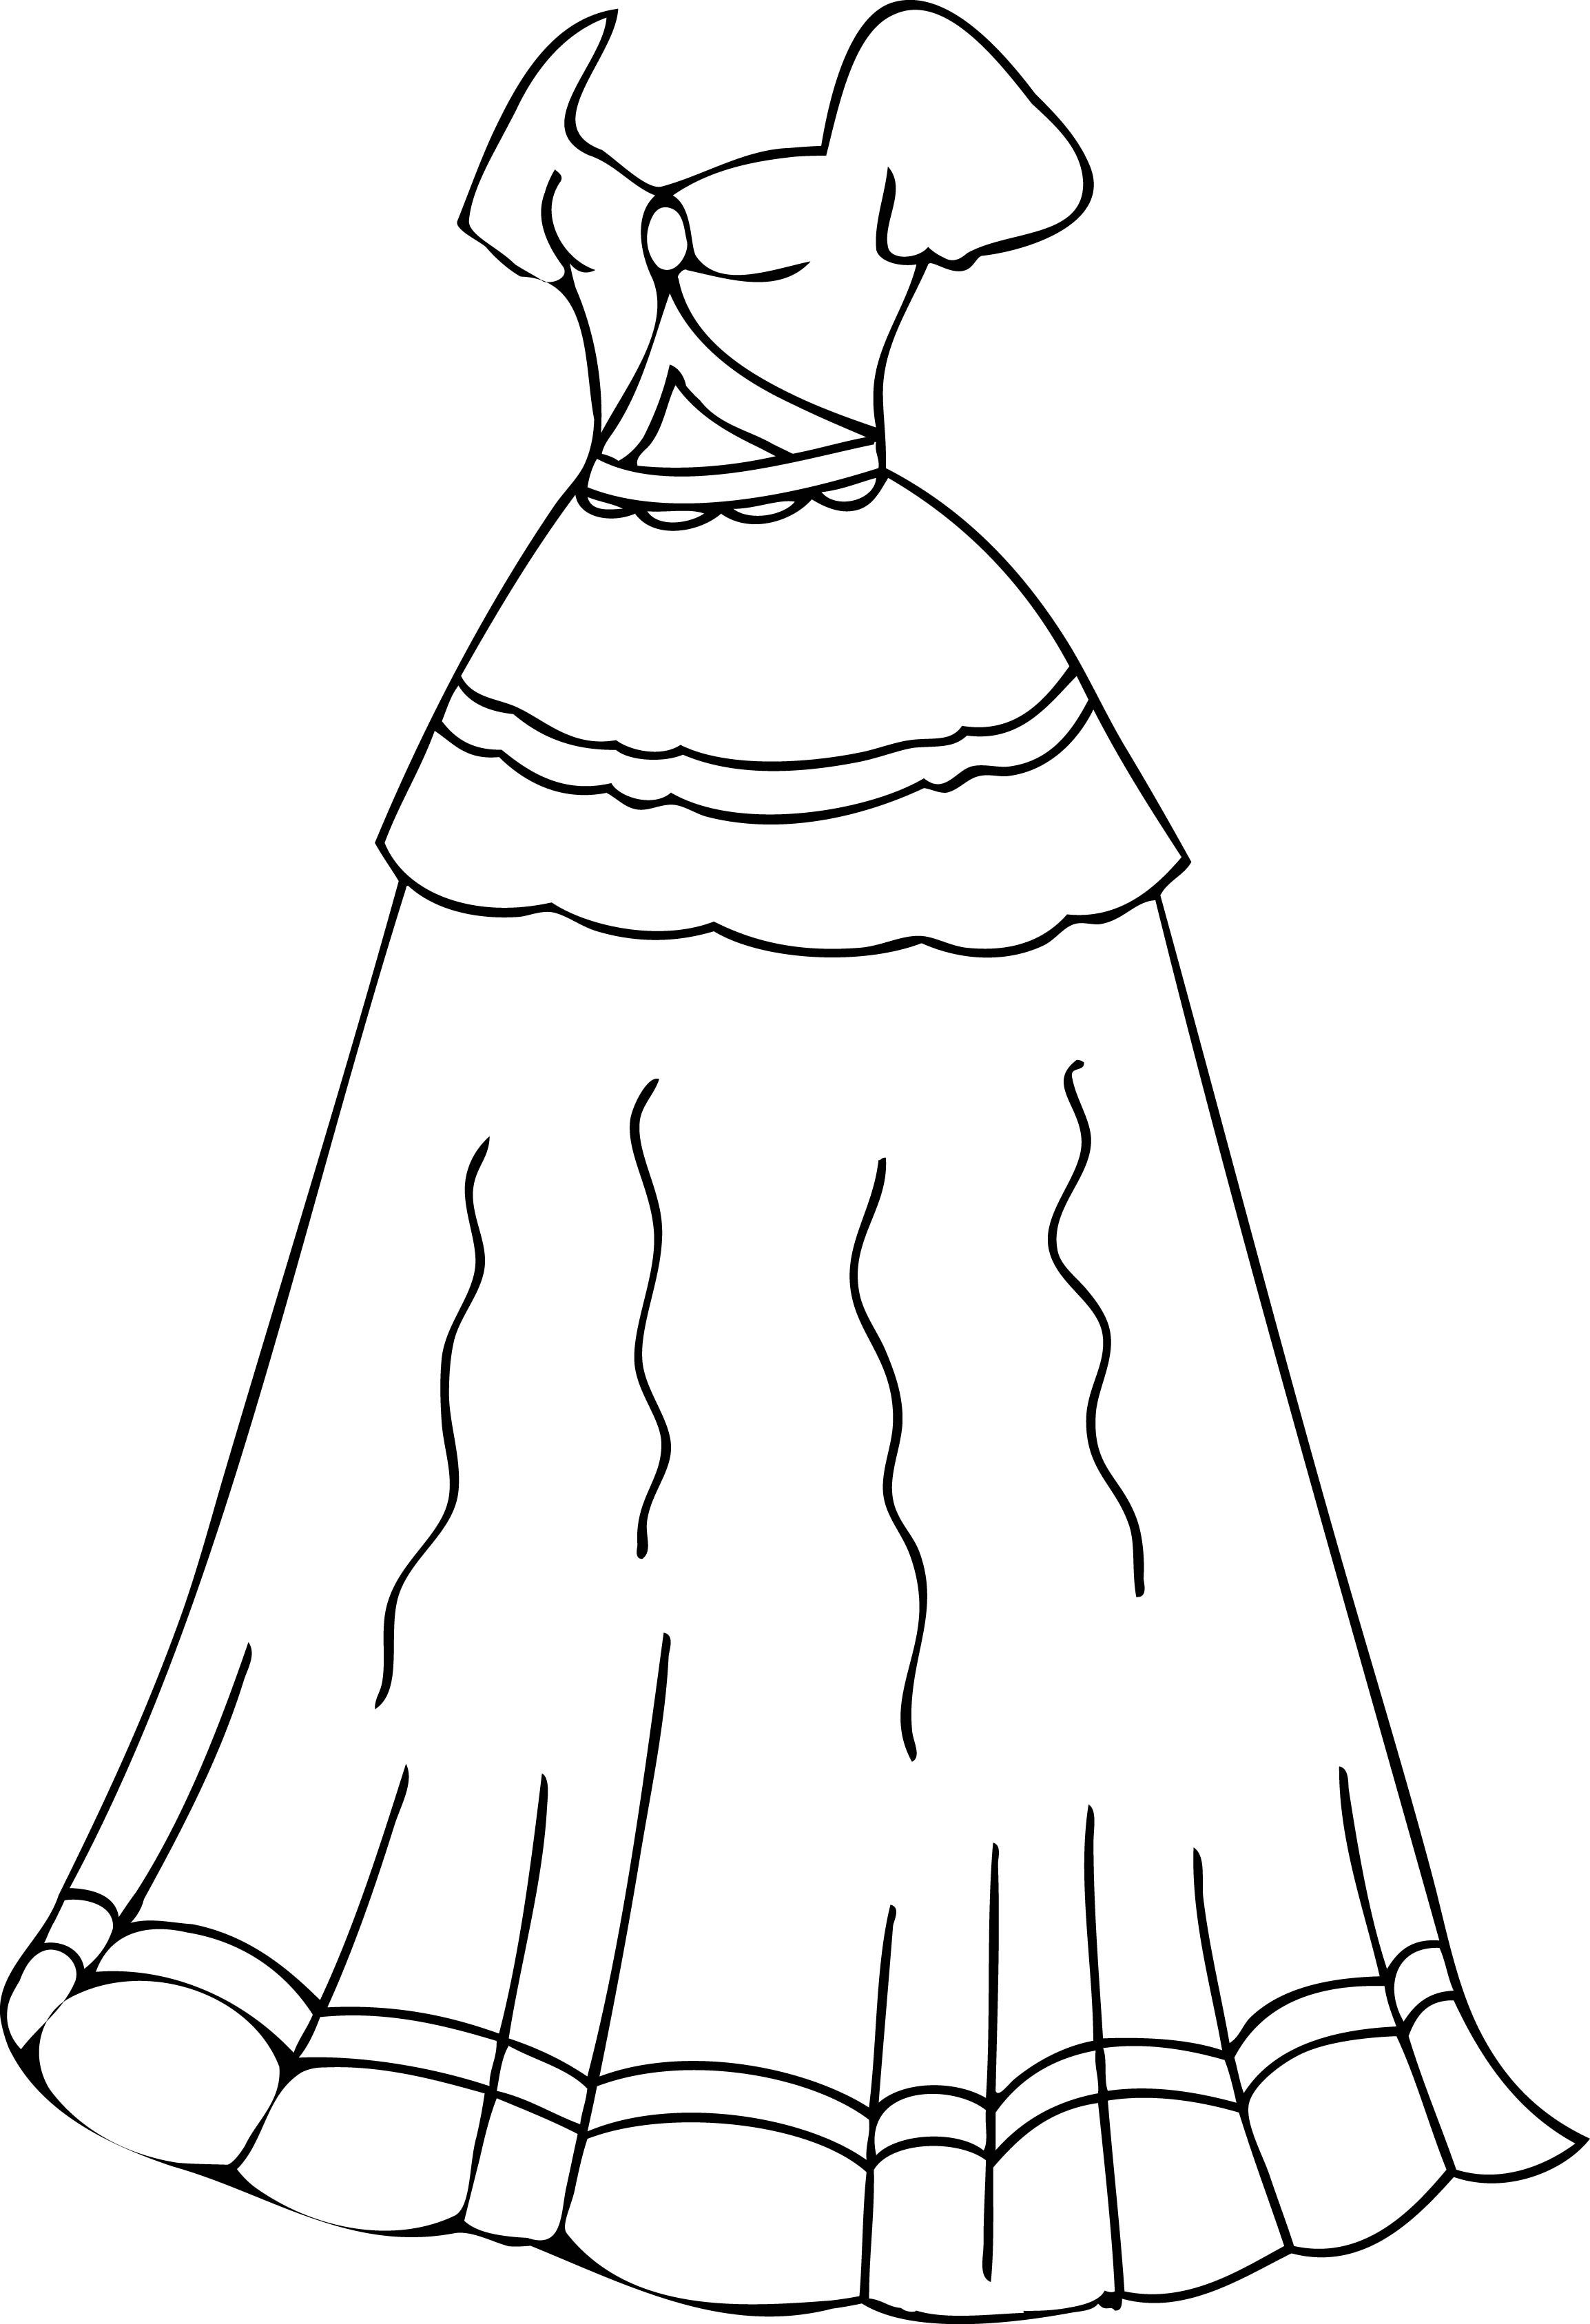 tinkerbell coloring pages - dress coloring page